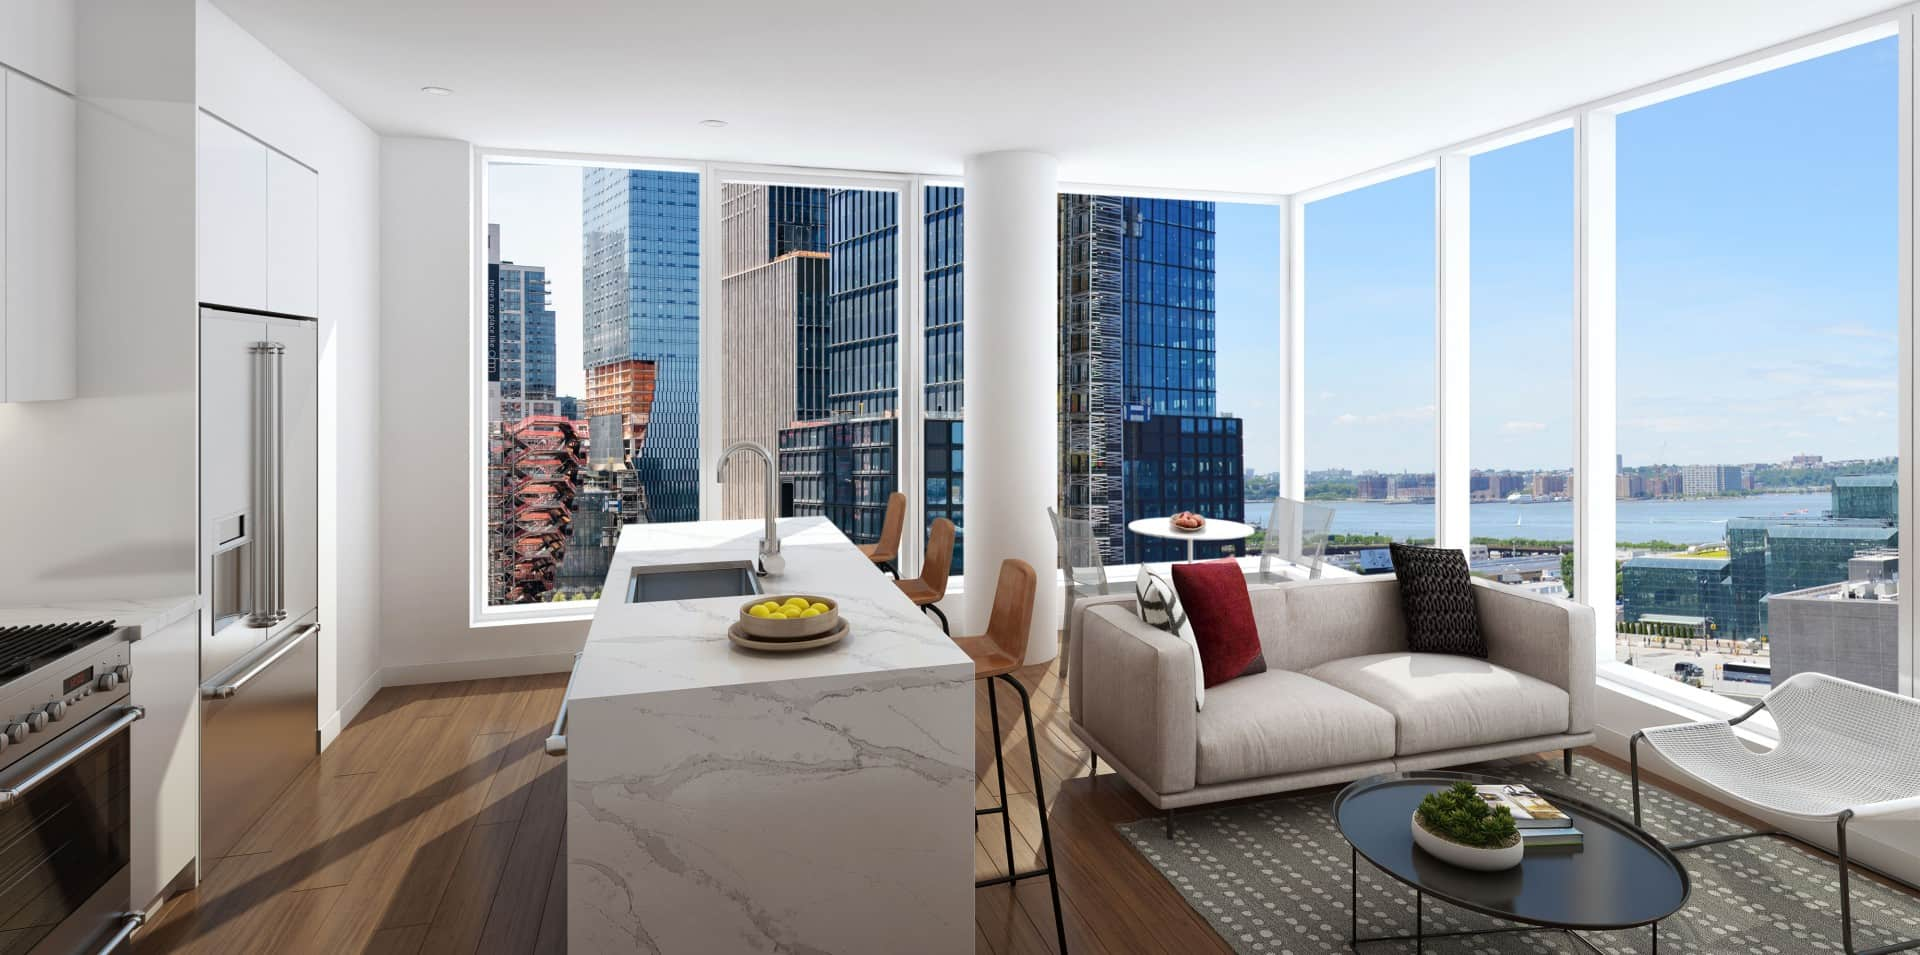 Hudson 36 At 515 West 36th Street In Hudson Yards Luxury